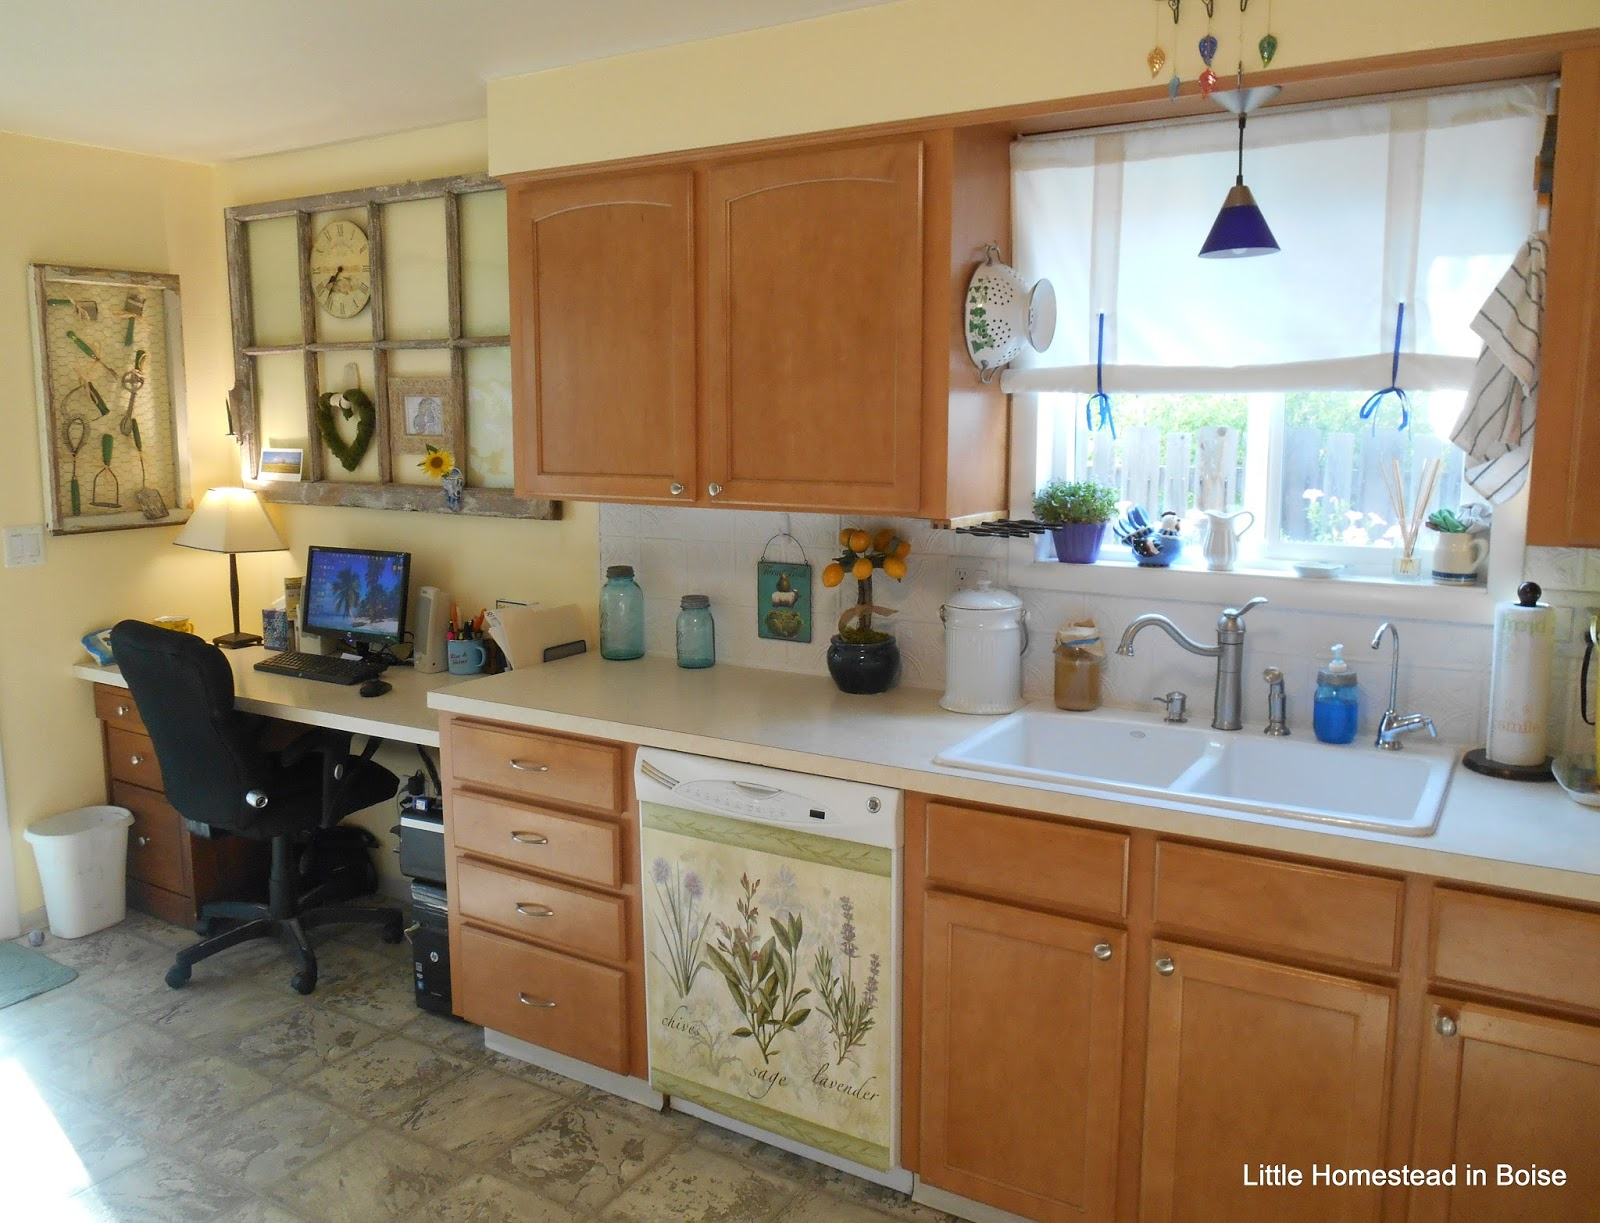 Little Homestead in Boise My Budget Kitchen Makeover Finished